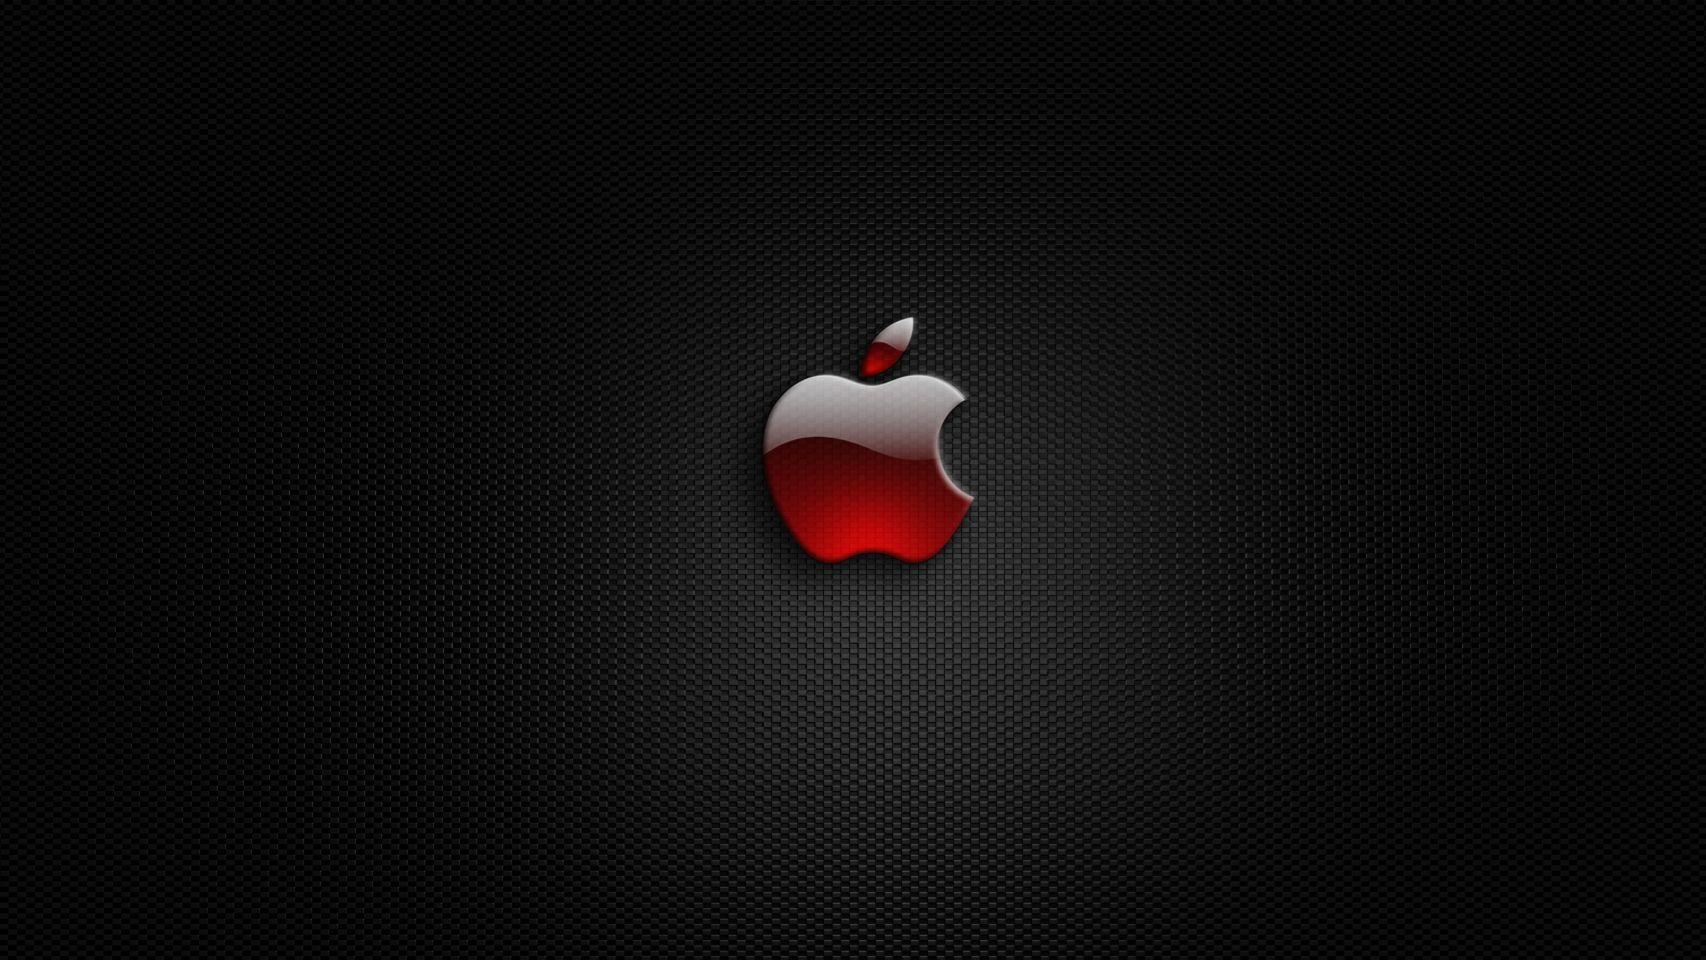 red apple mac wallpaper wide #7821 wallpaper | download wallpaper